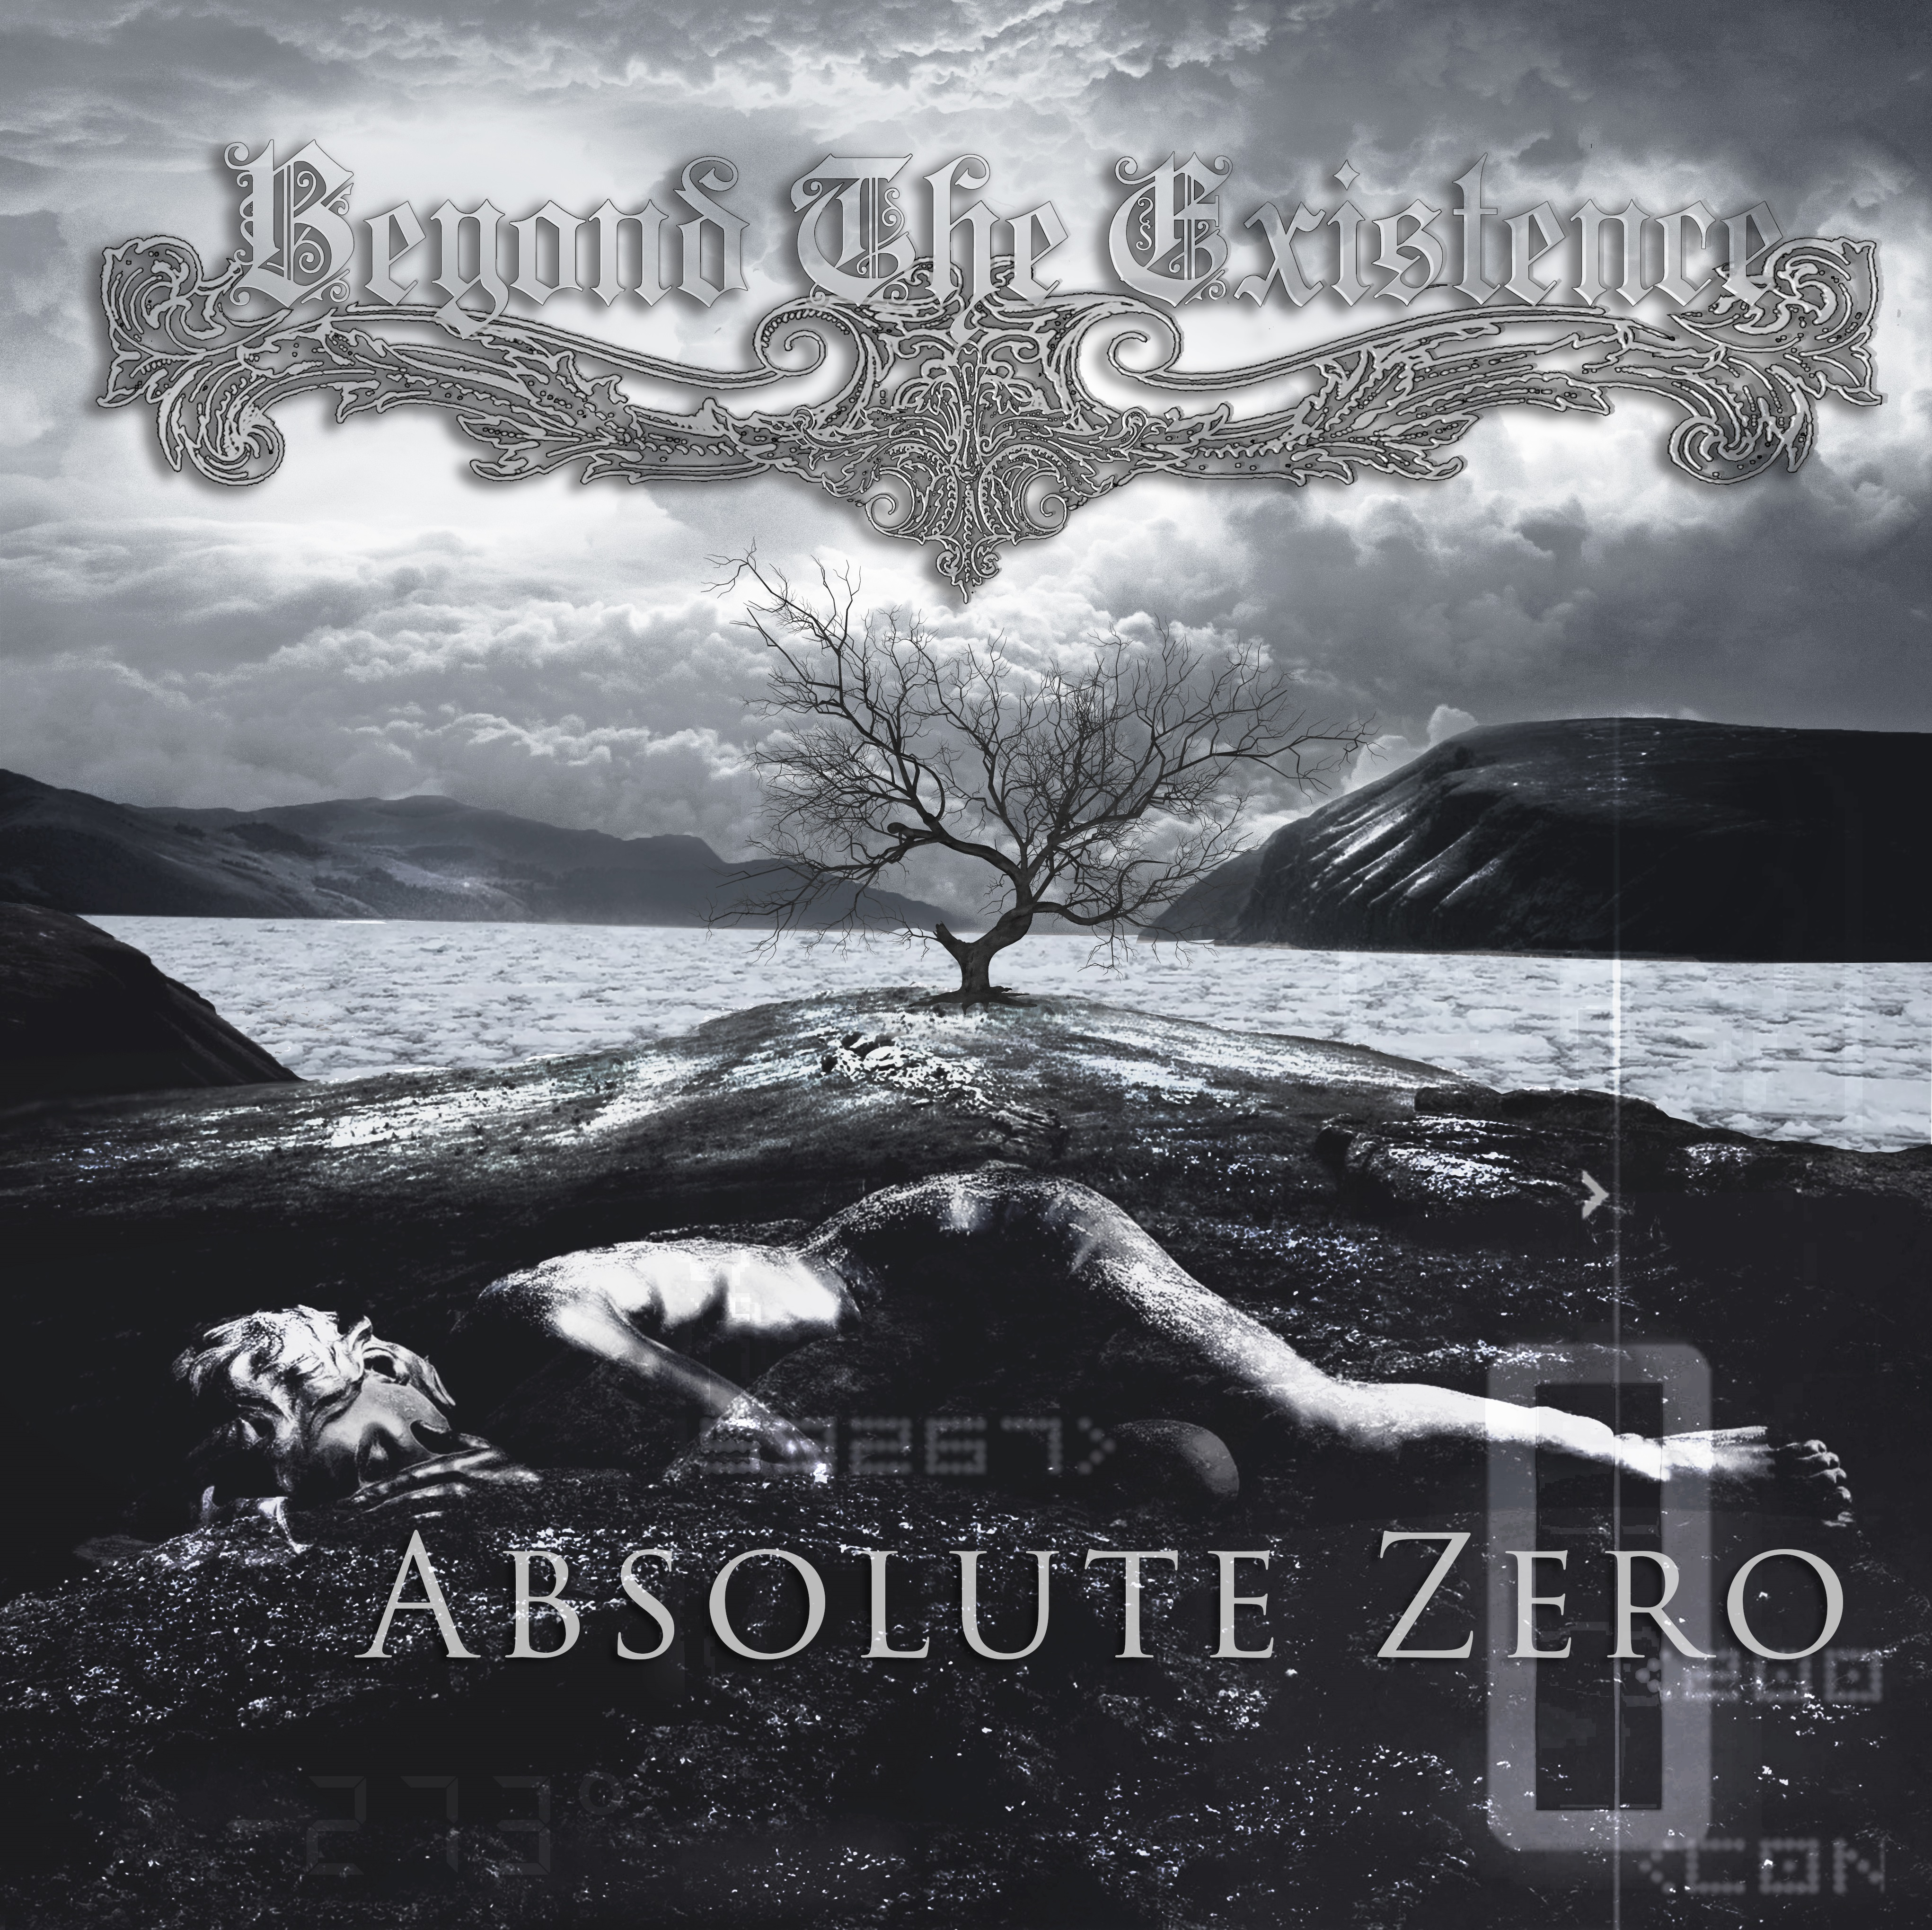 Absolute zero Front - Copy